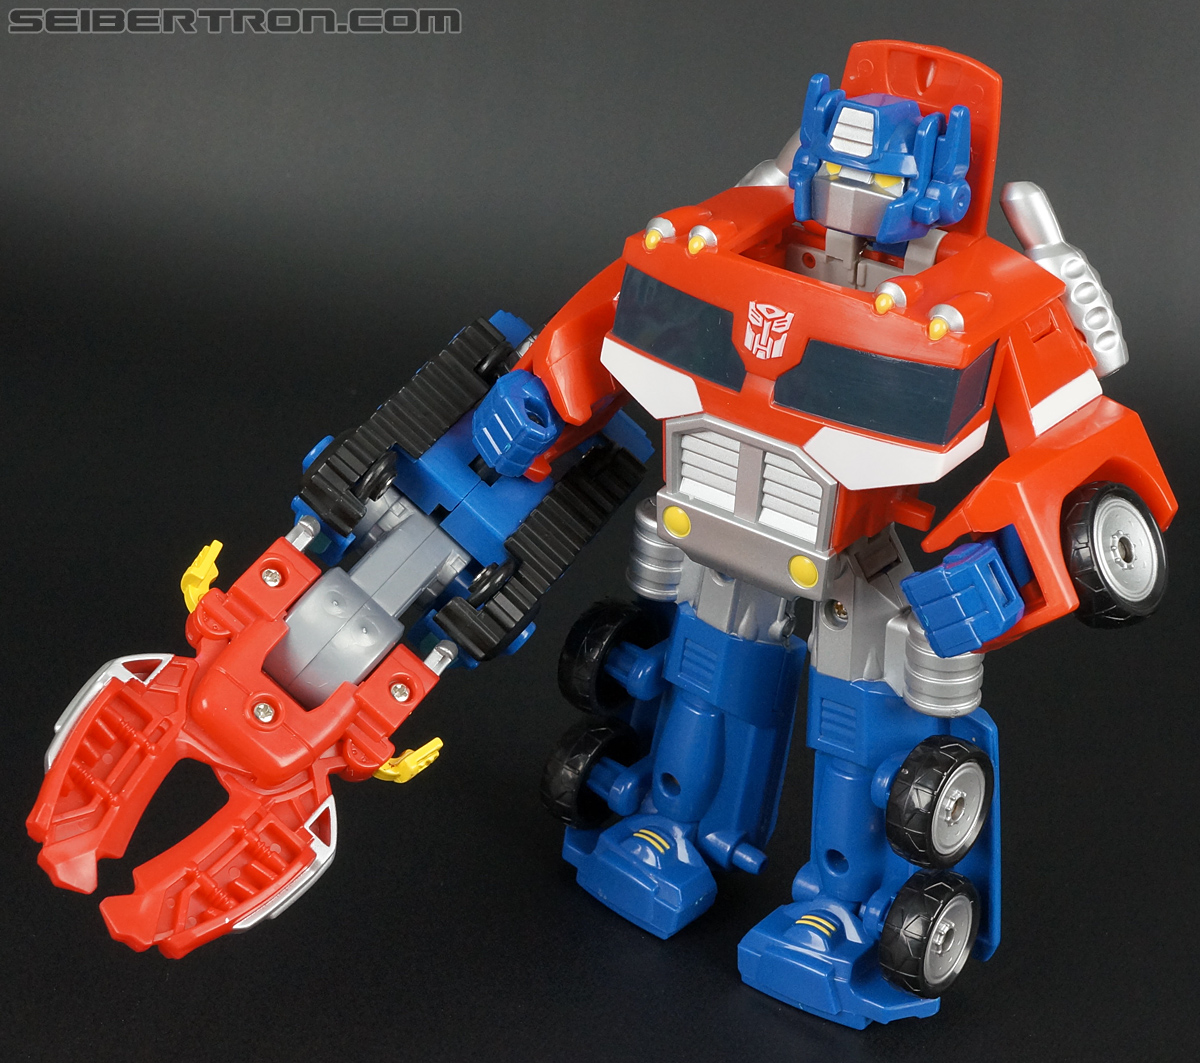 Transformers Rescue Bots Optimus Prime (Image #87 of 112)